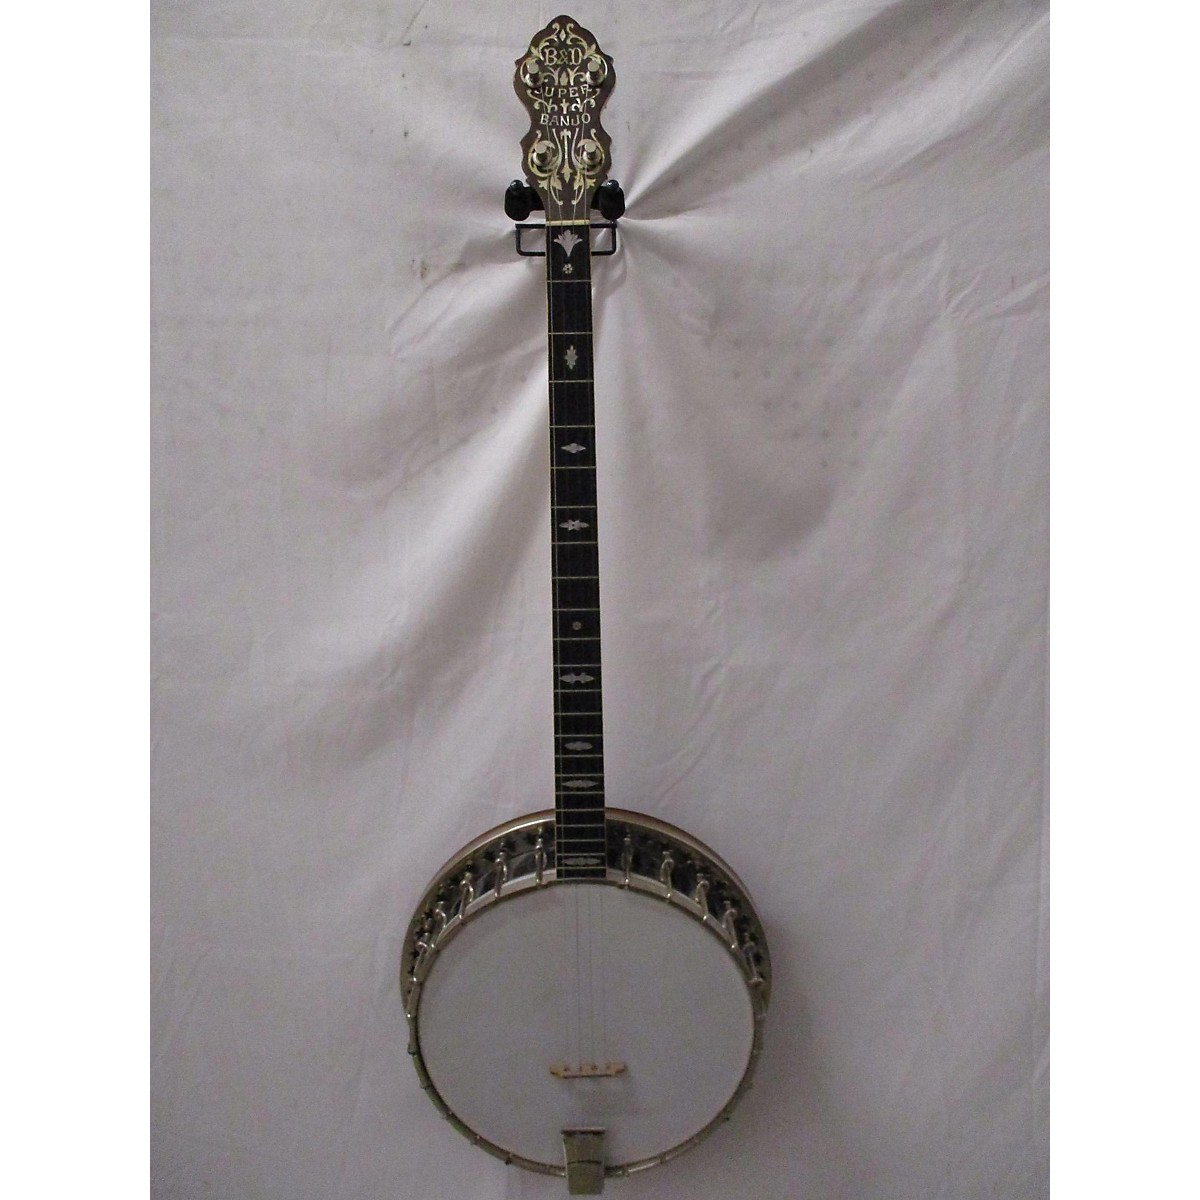 Bacon & Day 1920s Super Tenor Banjo